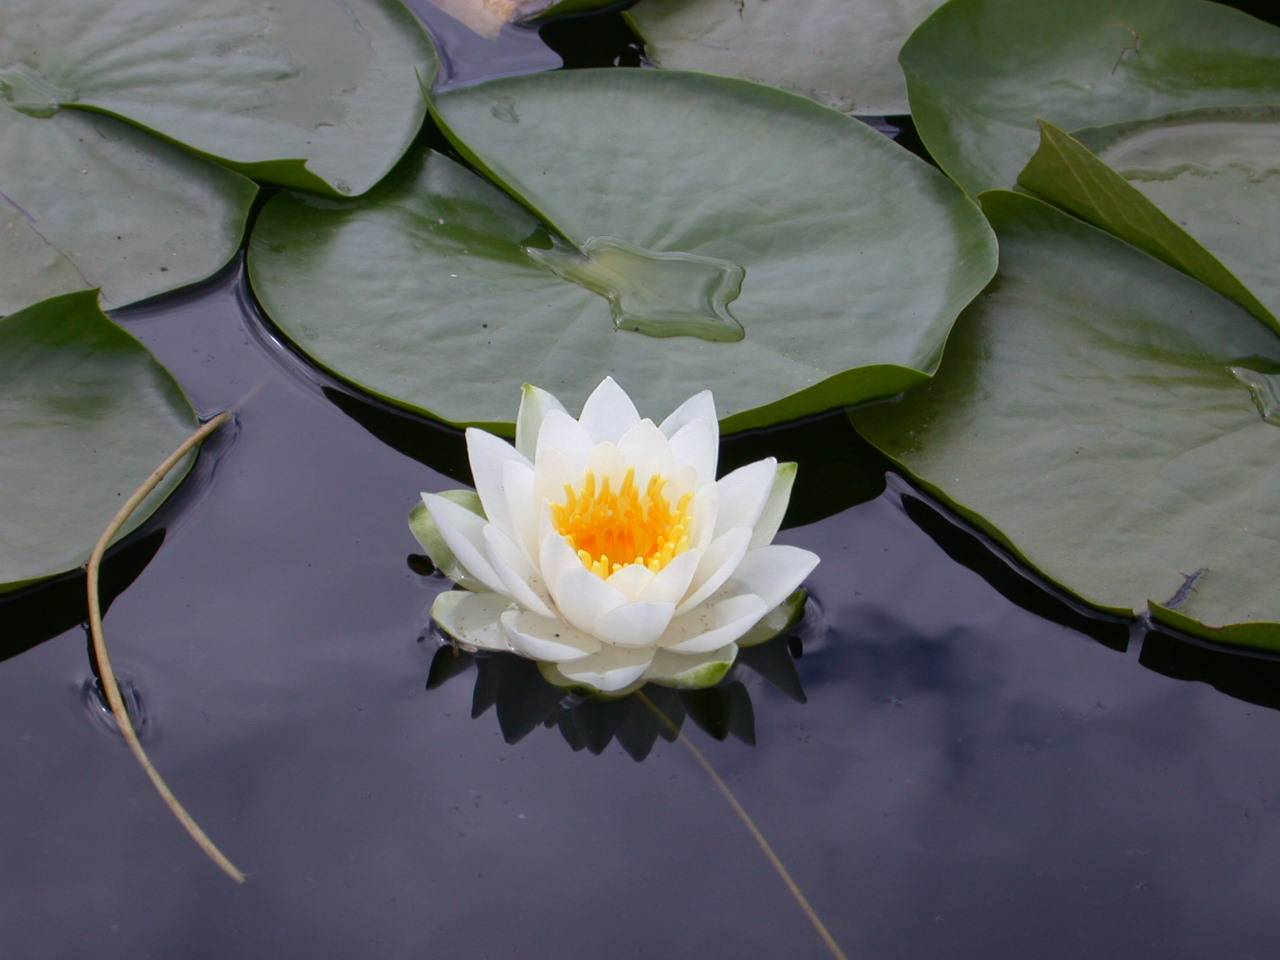 Lotus Flower HD Wallpaper | Lotus Flower Pictures | New Wallpapers